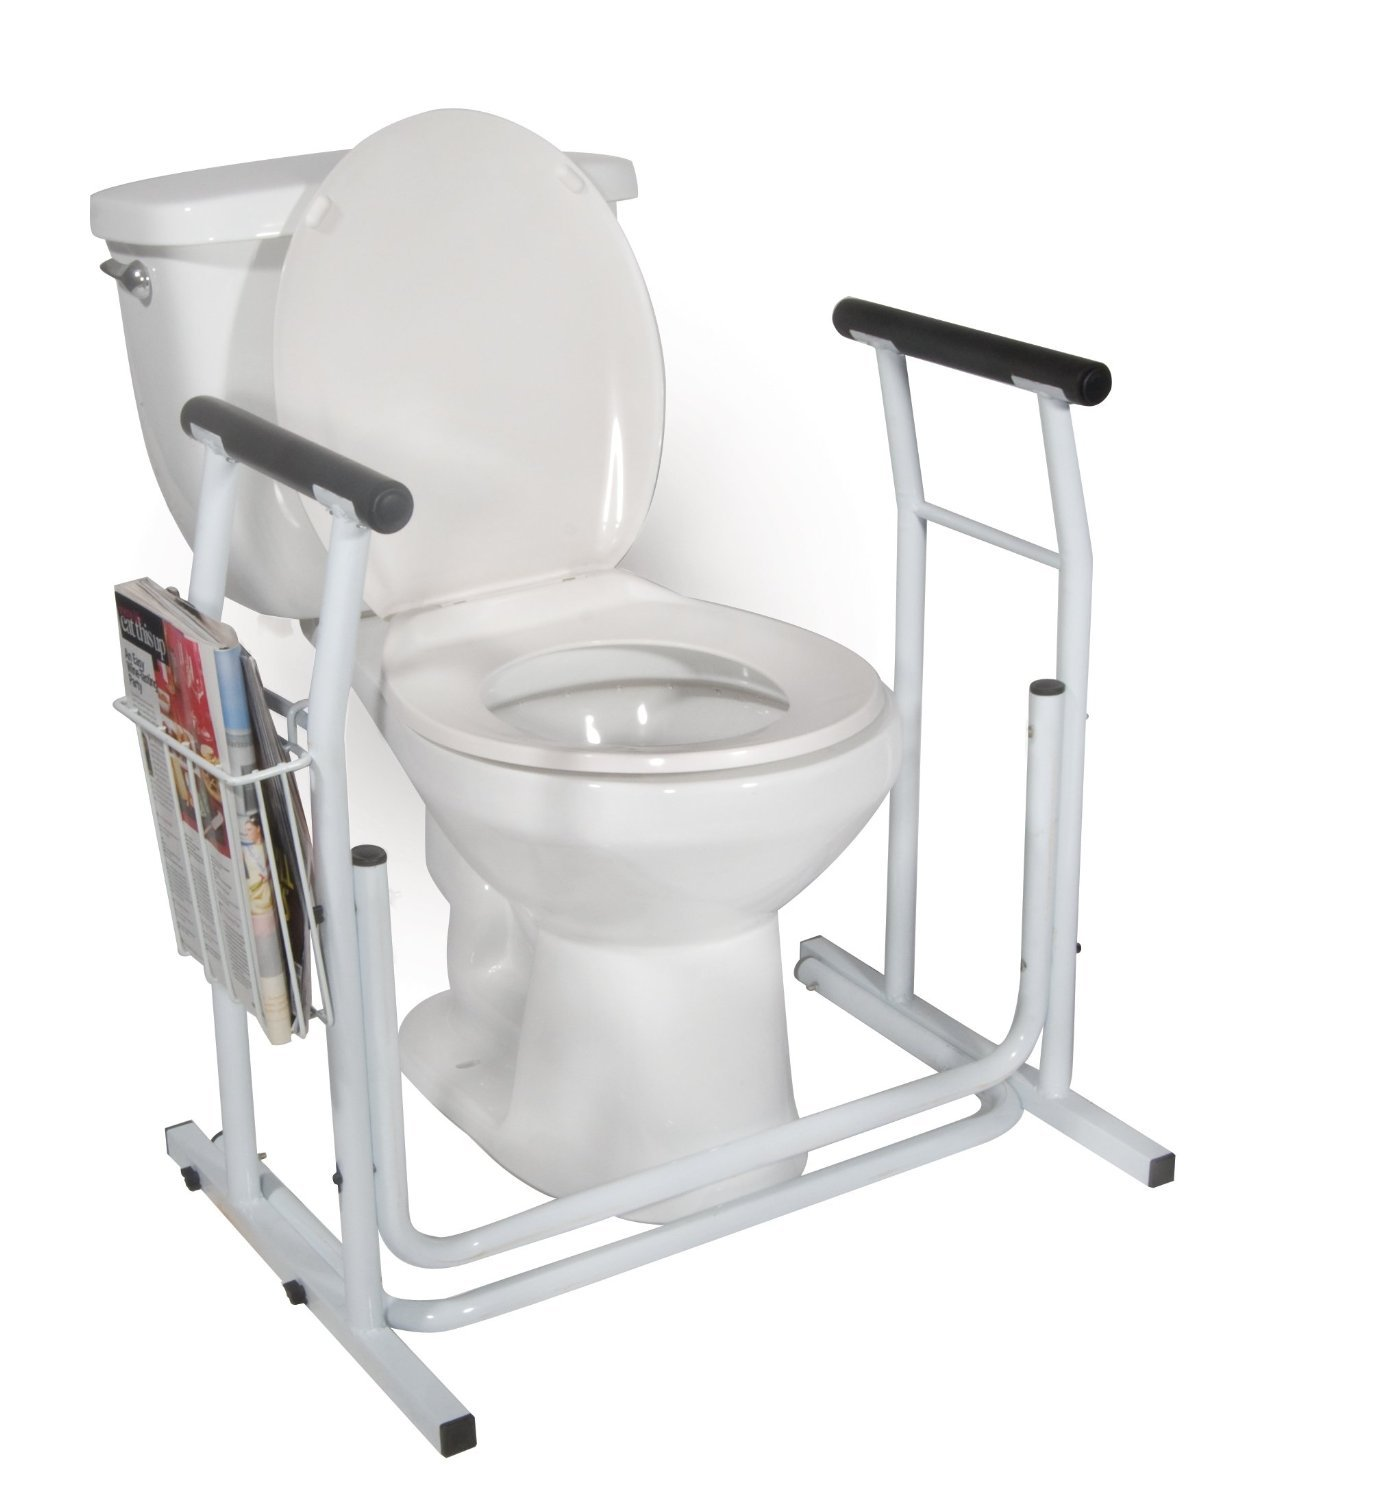 Portable commode folding bedside handicap adult toilet potty chair - Amazon Com Medmobile Stand Alone Toilet Safety Rail Health